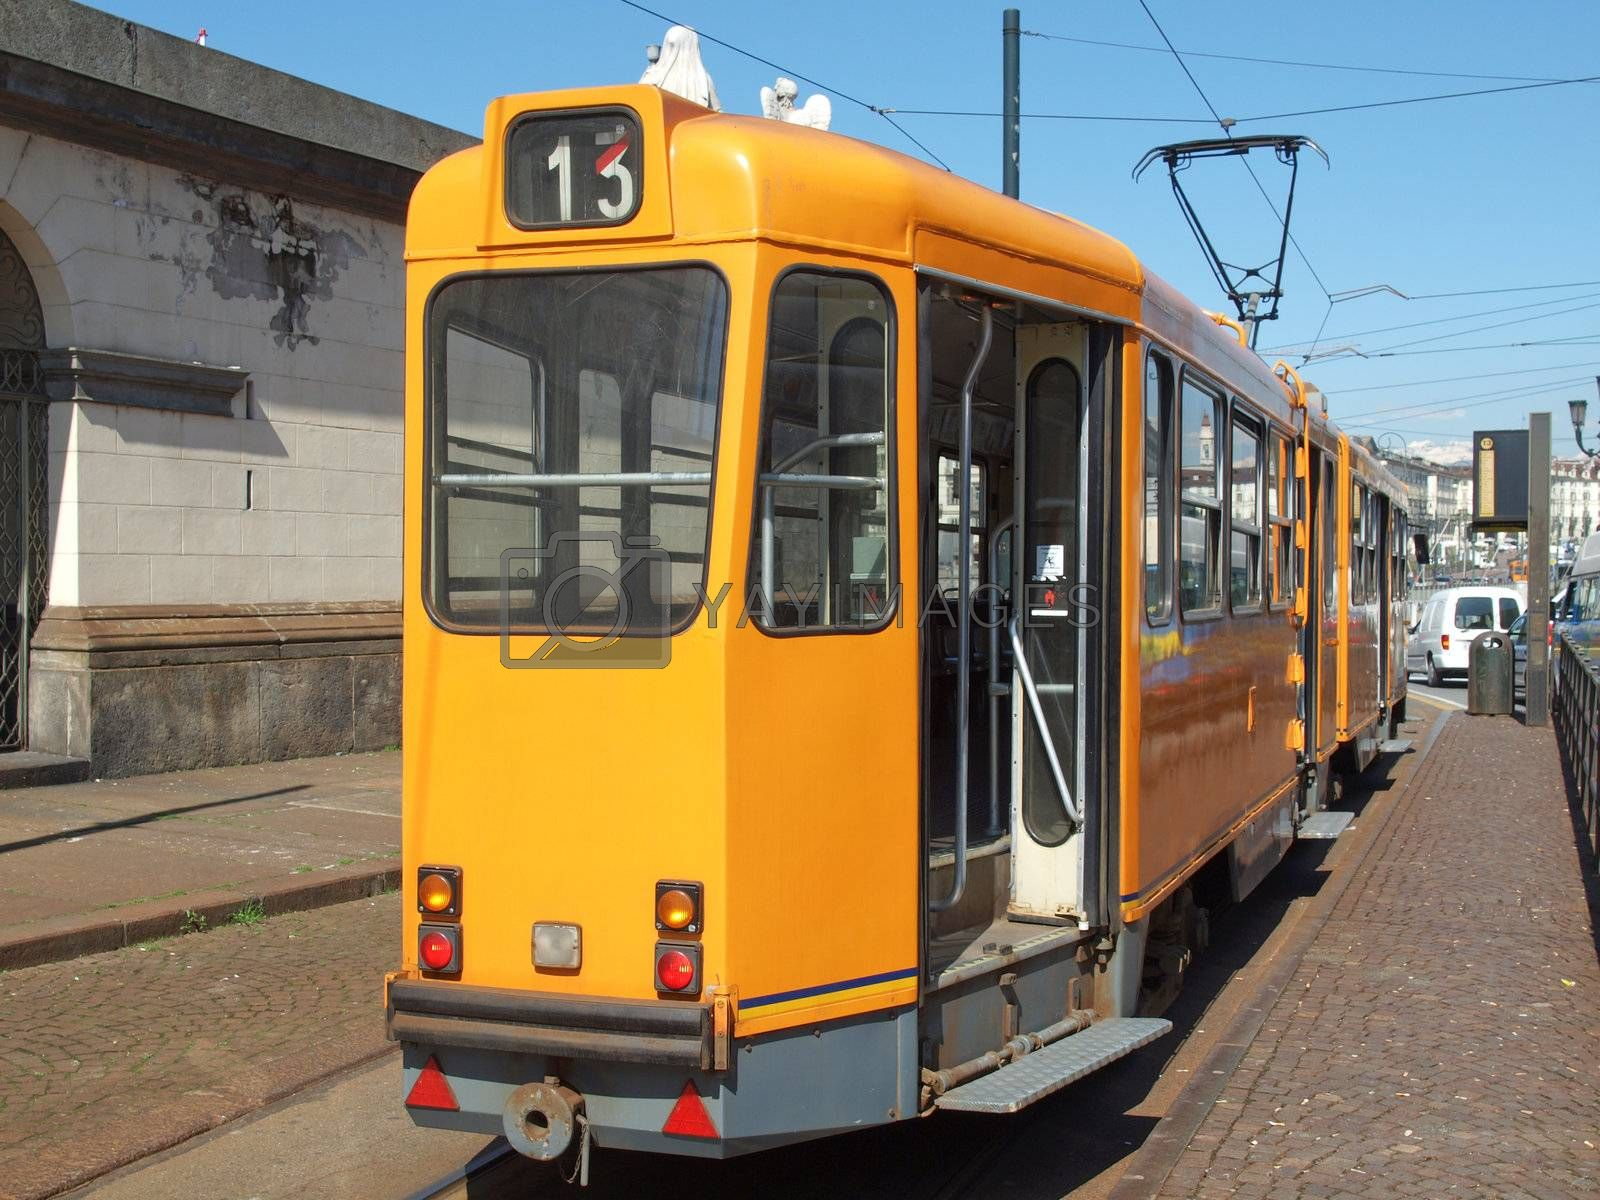 Tramway train for public transport mass transit in Turin, Italy